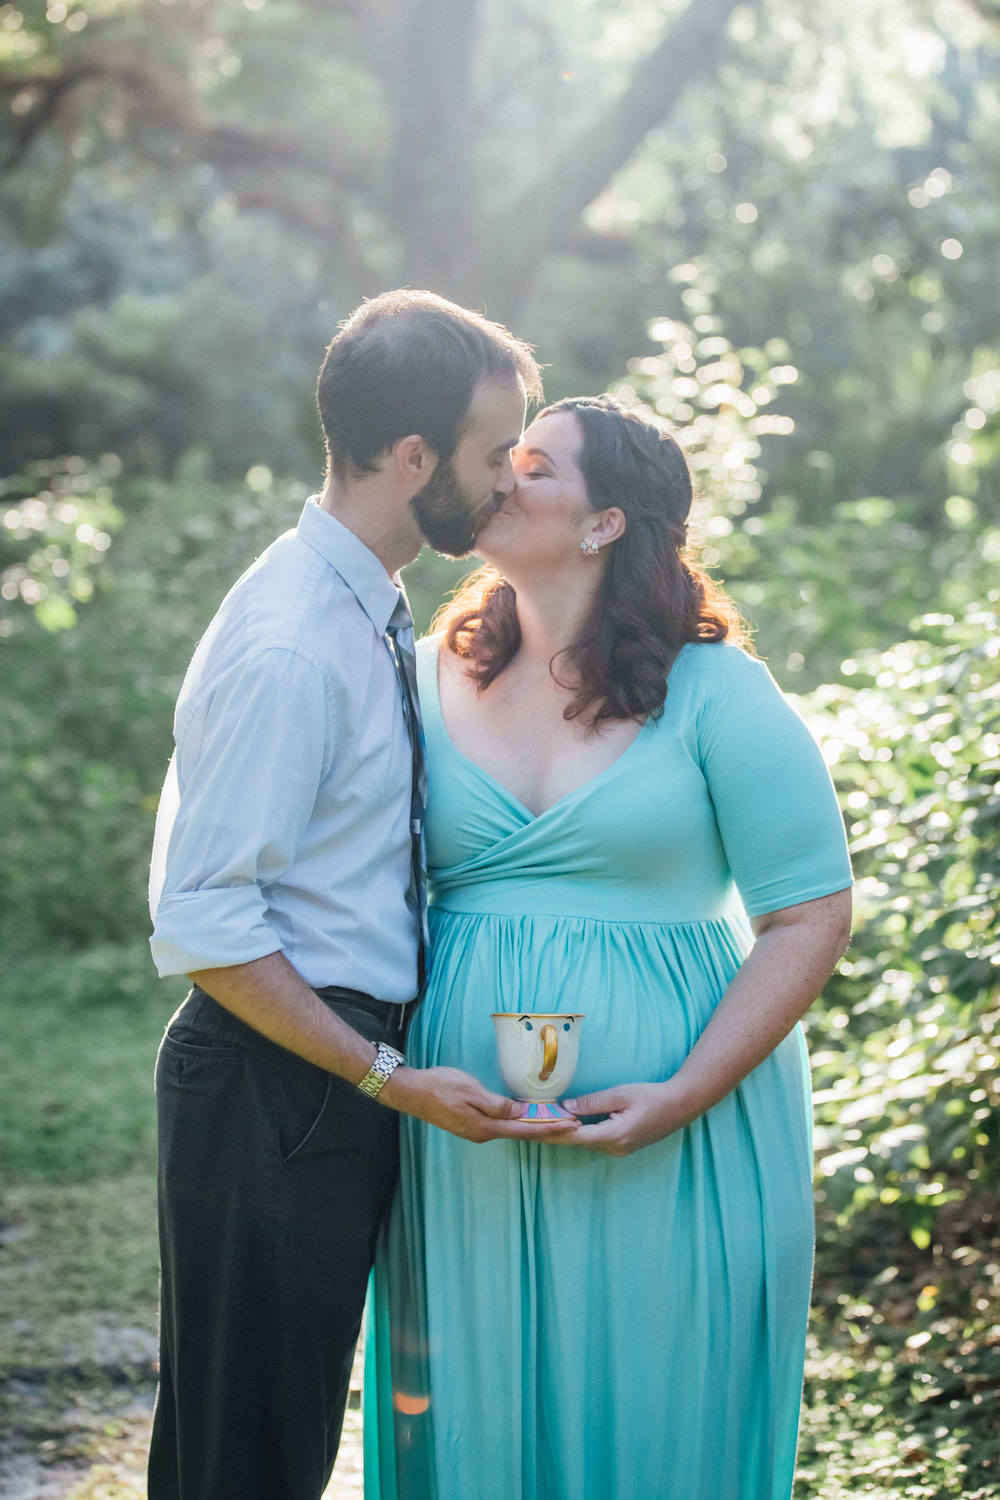 Disney maternity photos